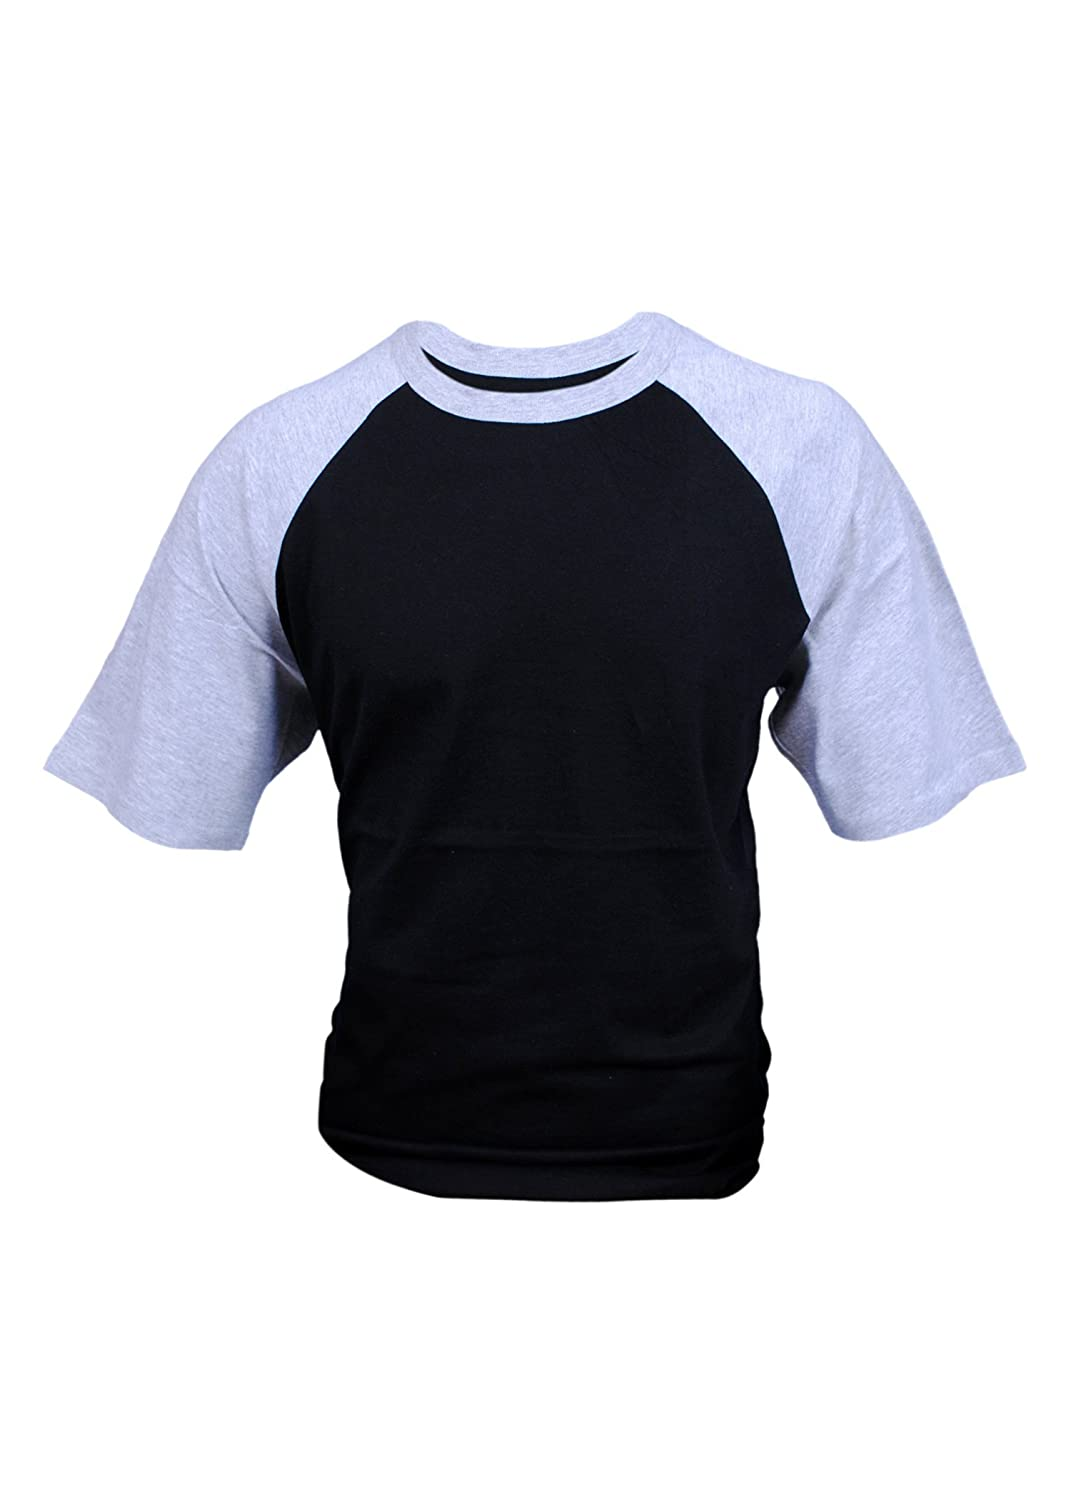 93d6767fd Online Cheap wholesale ILTEX Raglan Short Sleeve Baseball Style T-Shirt  Adult Casual Wear T-Shirts Suppliers